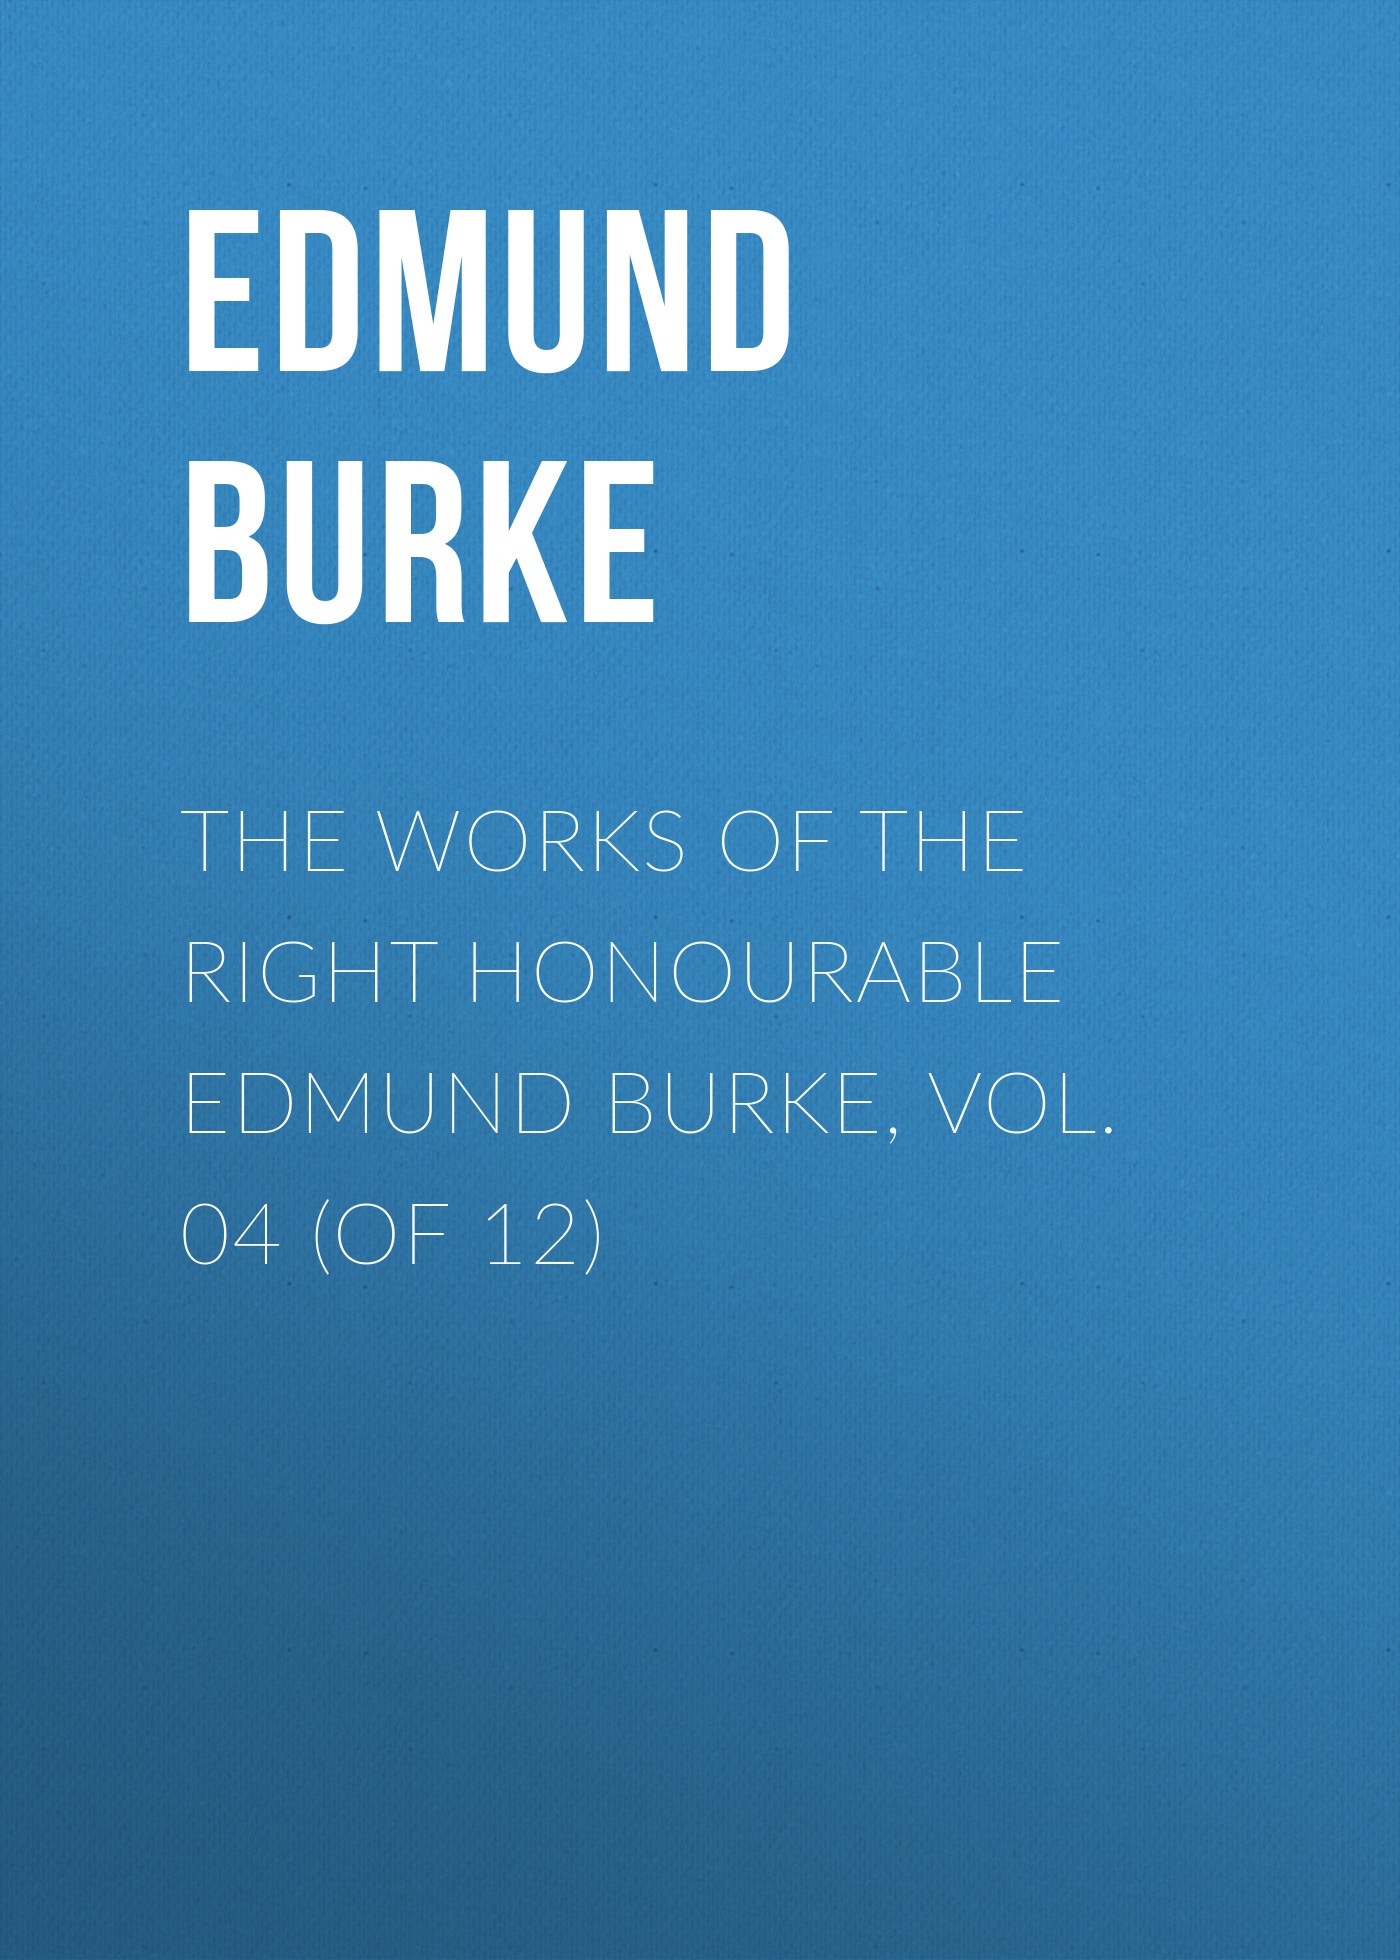 Edmund Burke The Works of the Right Honourable Edmund Burke, Vol. 04 (of 12) edmund burke the works of the right honourable edmund burke vol 02 of 12